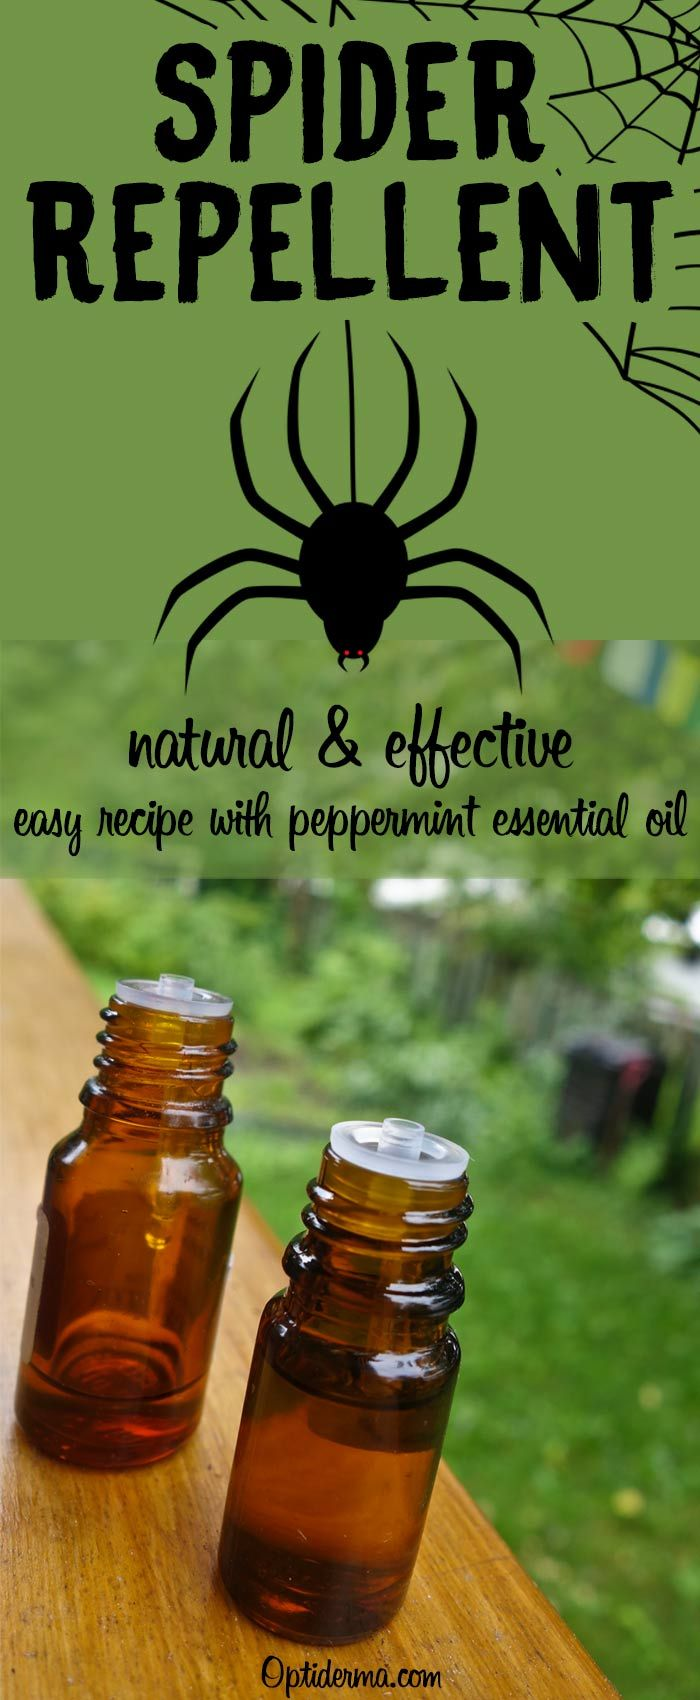 Peppermint Oil For Spiders How To Use It To Repel Spiders Peppermint Oil For Spiders Peppermint Essential Oil Uses Peppermint Spider Spray